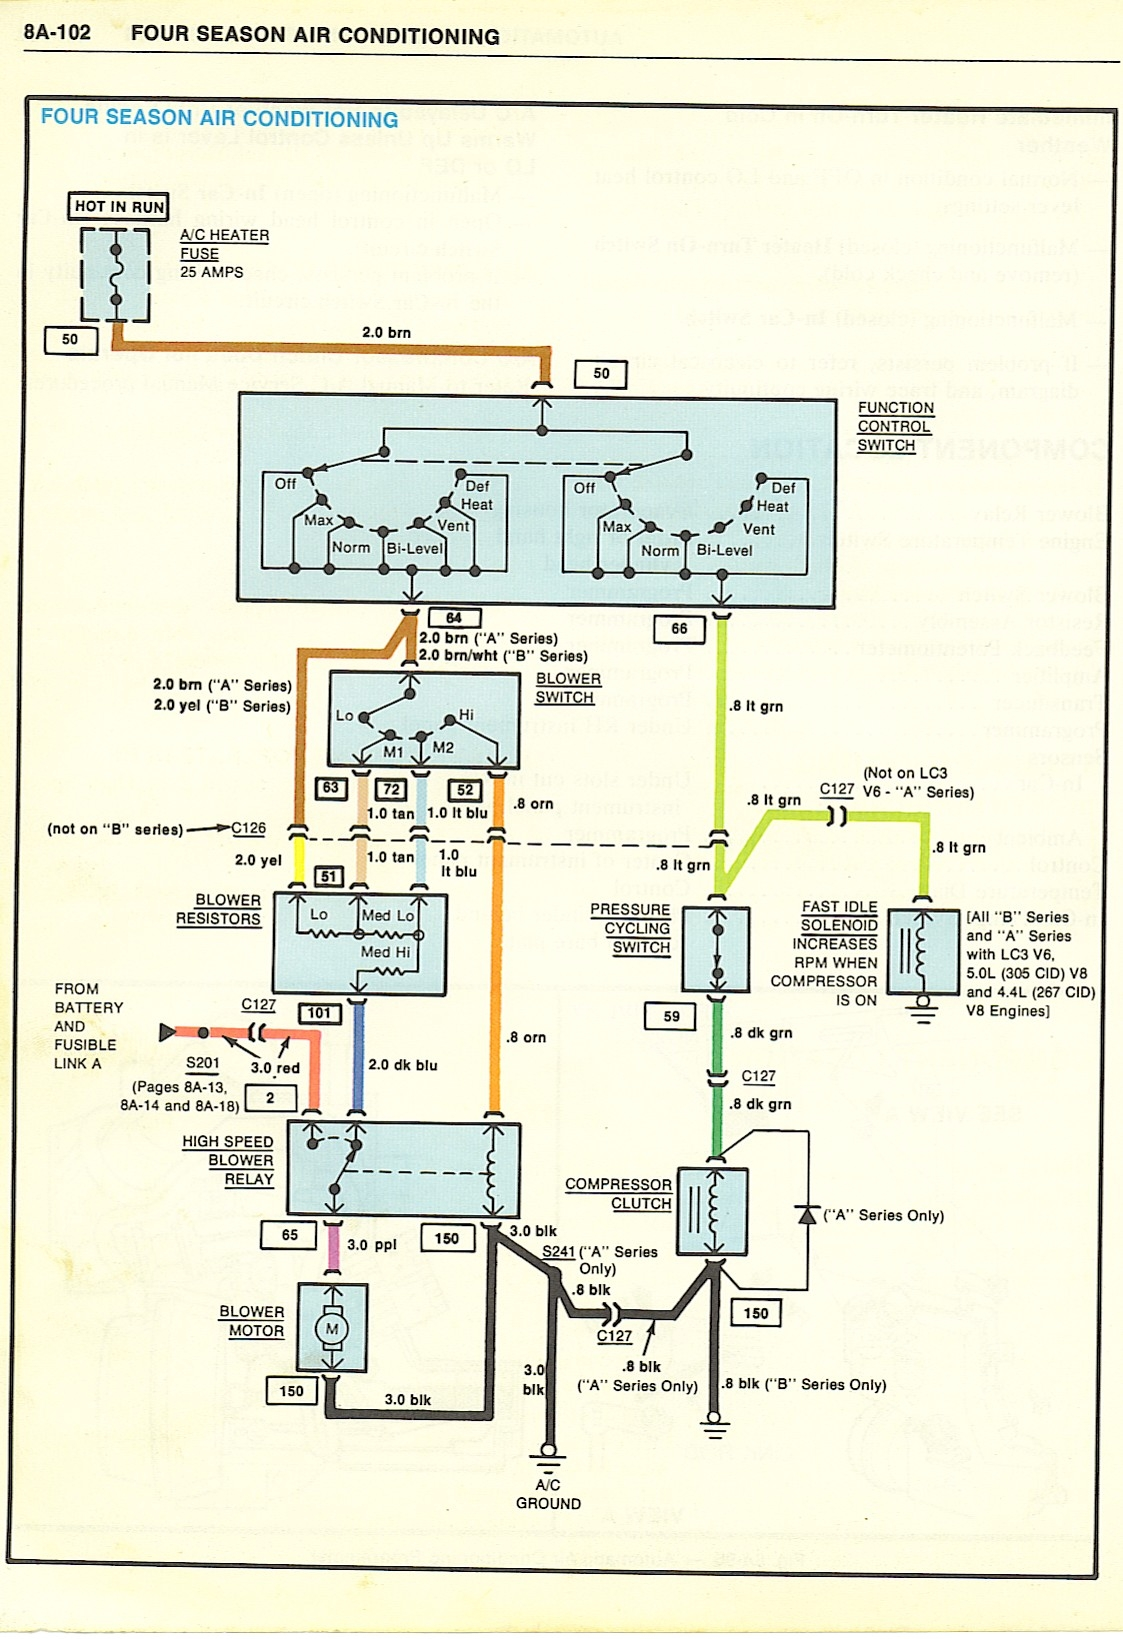 1968 FourSeasonAirConditioner chevy diagrams ac wiring diagram at crackthecode.co